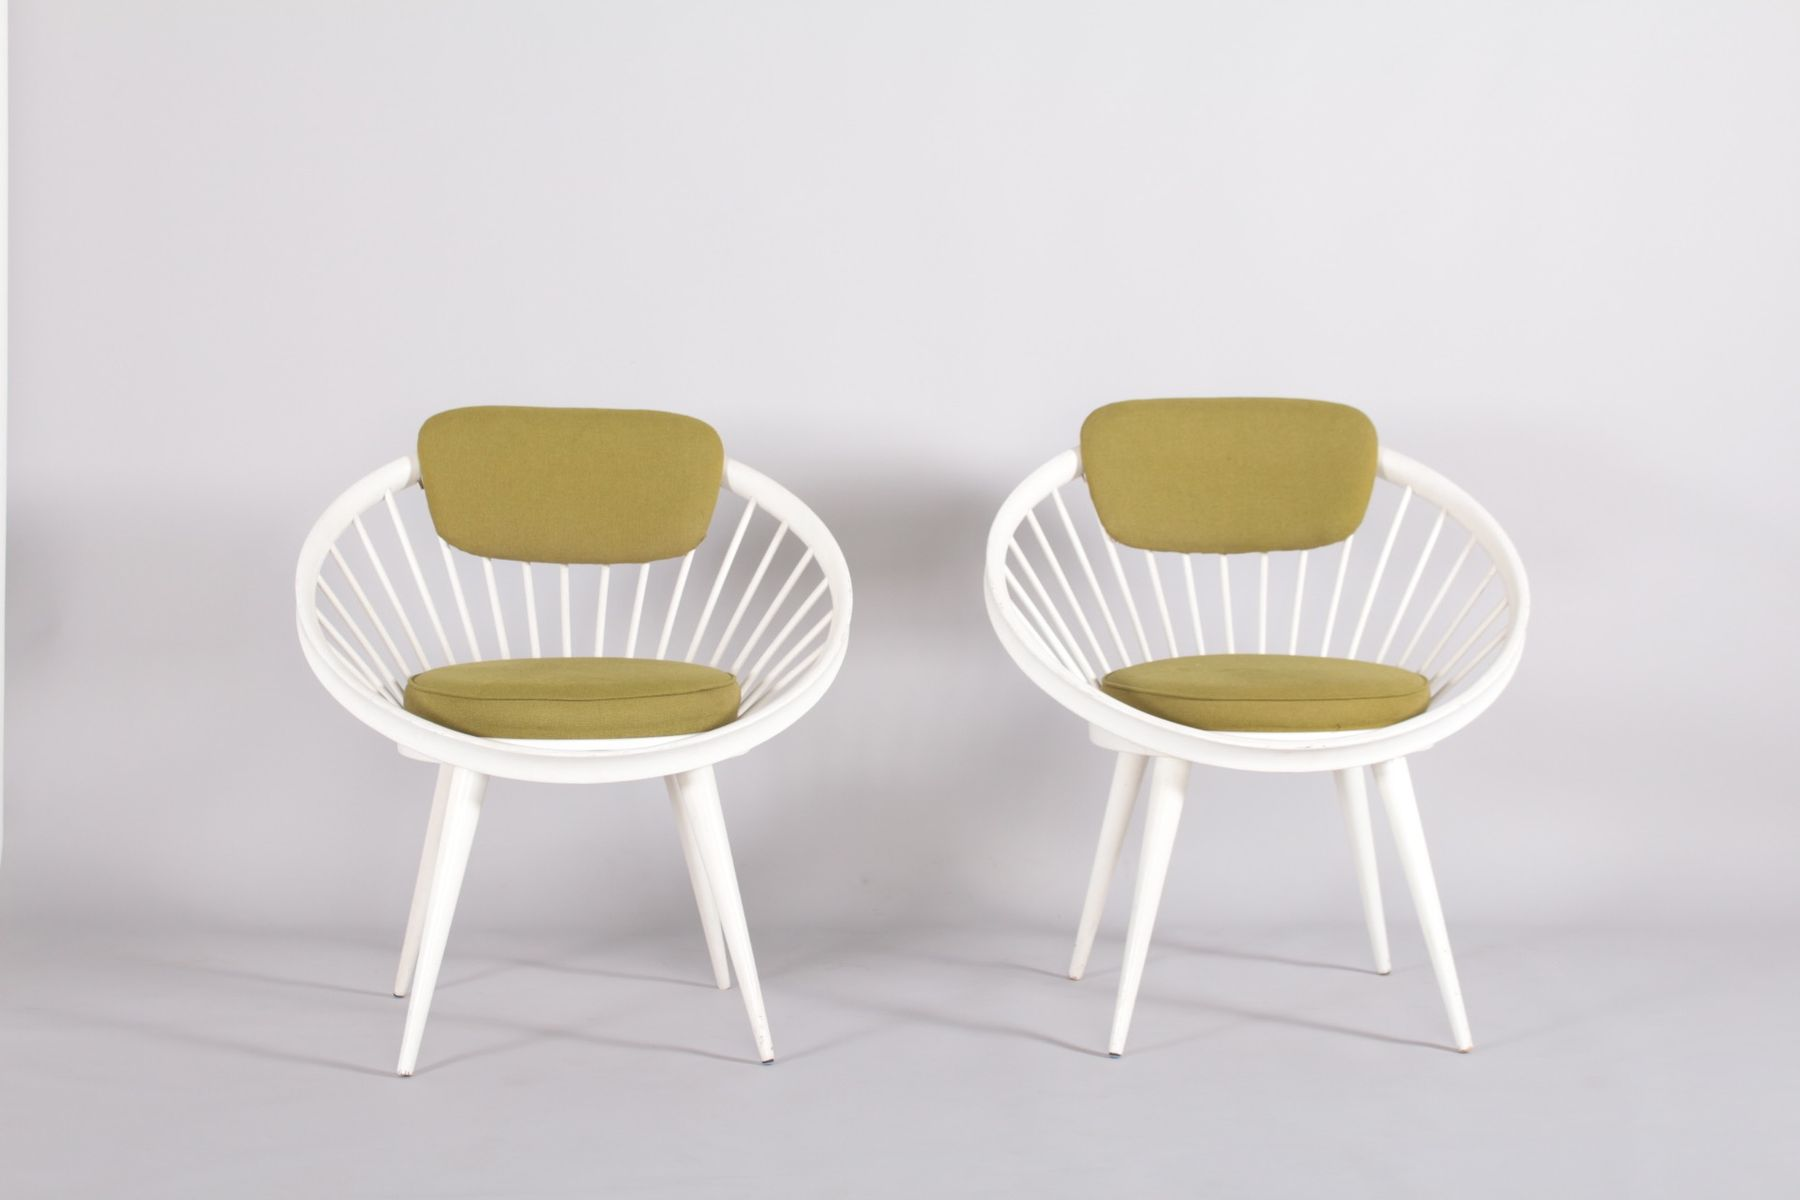 co chairs circle recovering chair cushions with piping by yngve ekström for swedese 1960s set of